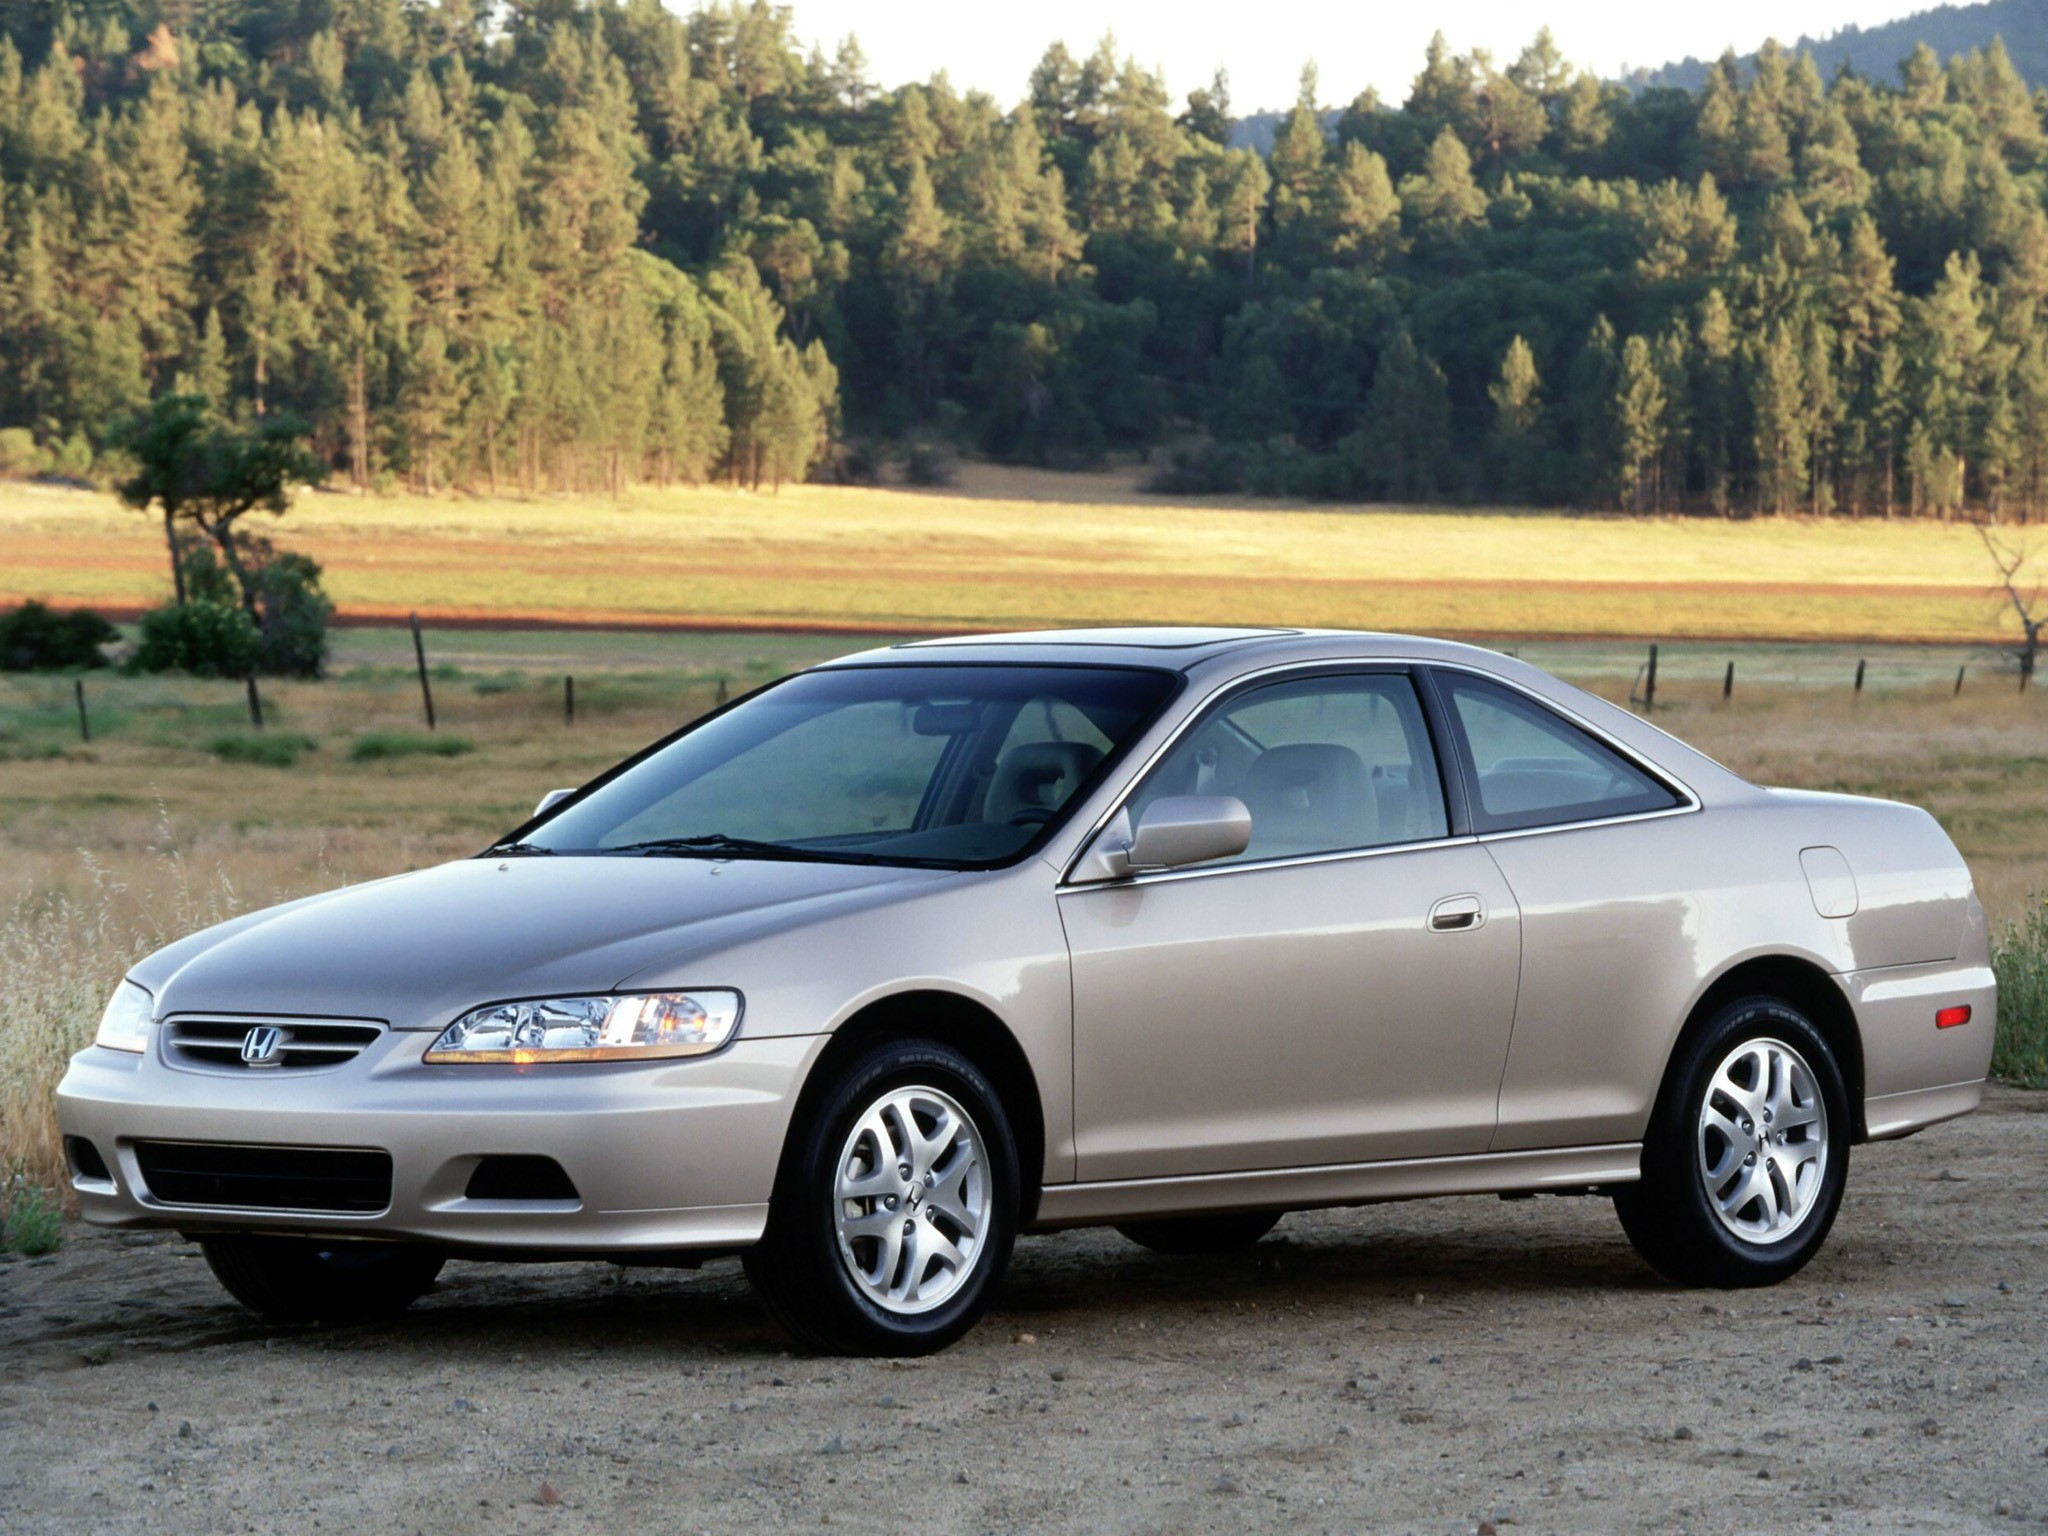 Stupendous Honda Accord Coupe Specs Photos 1998 1999 2000 2001 2002 Wiring Digital Resources Funiwoestevosnl